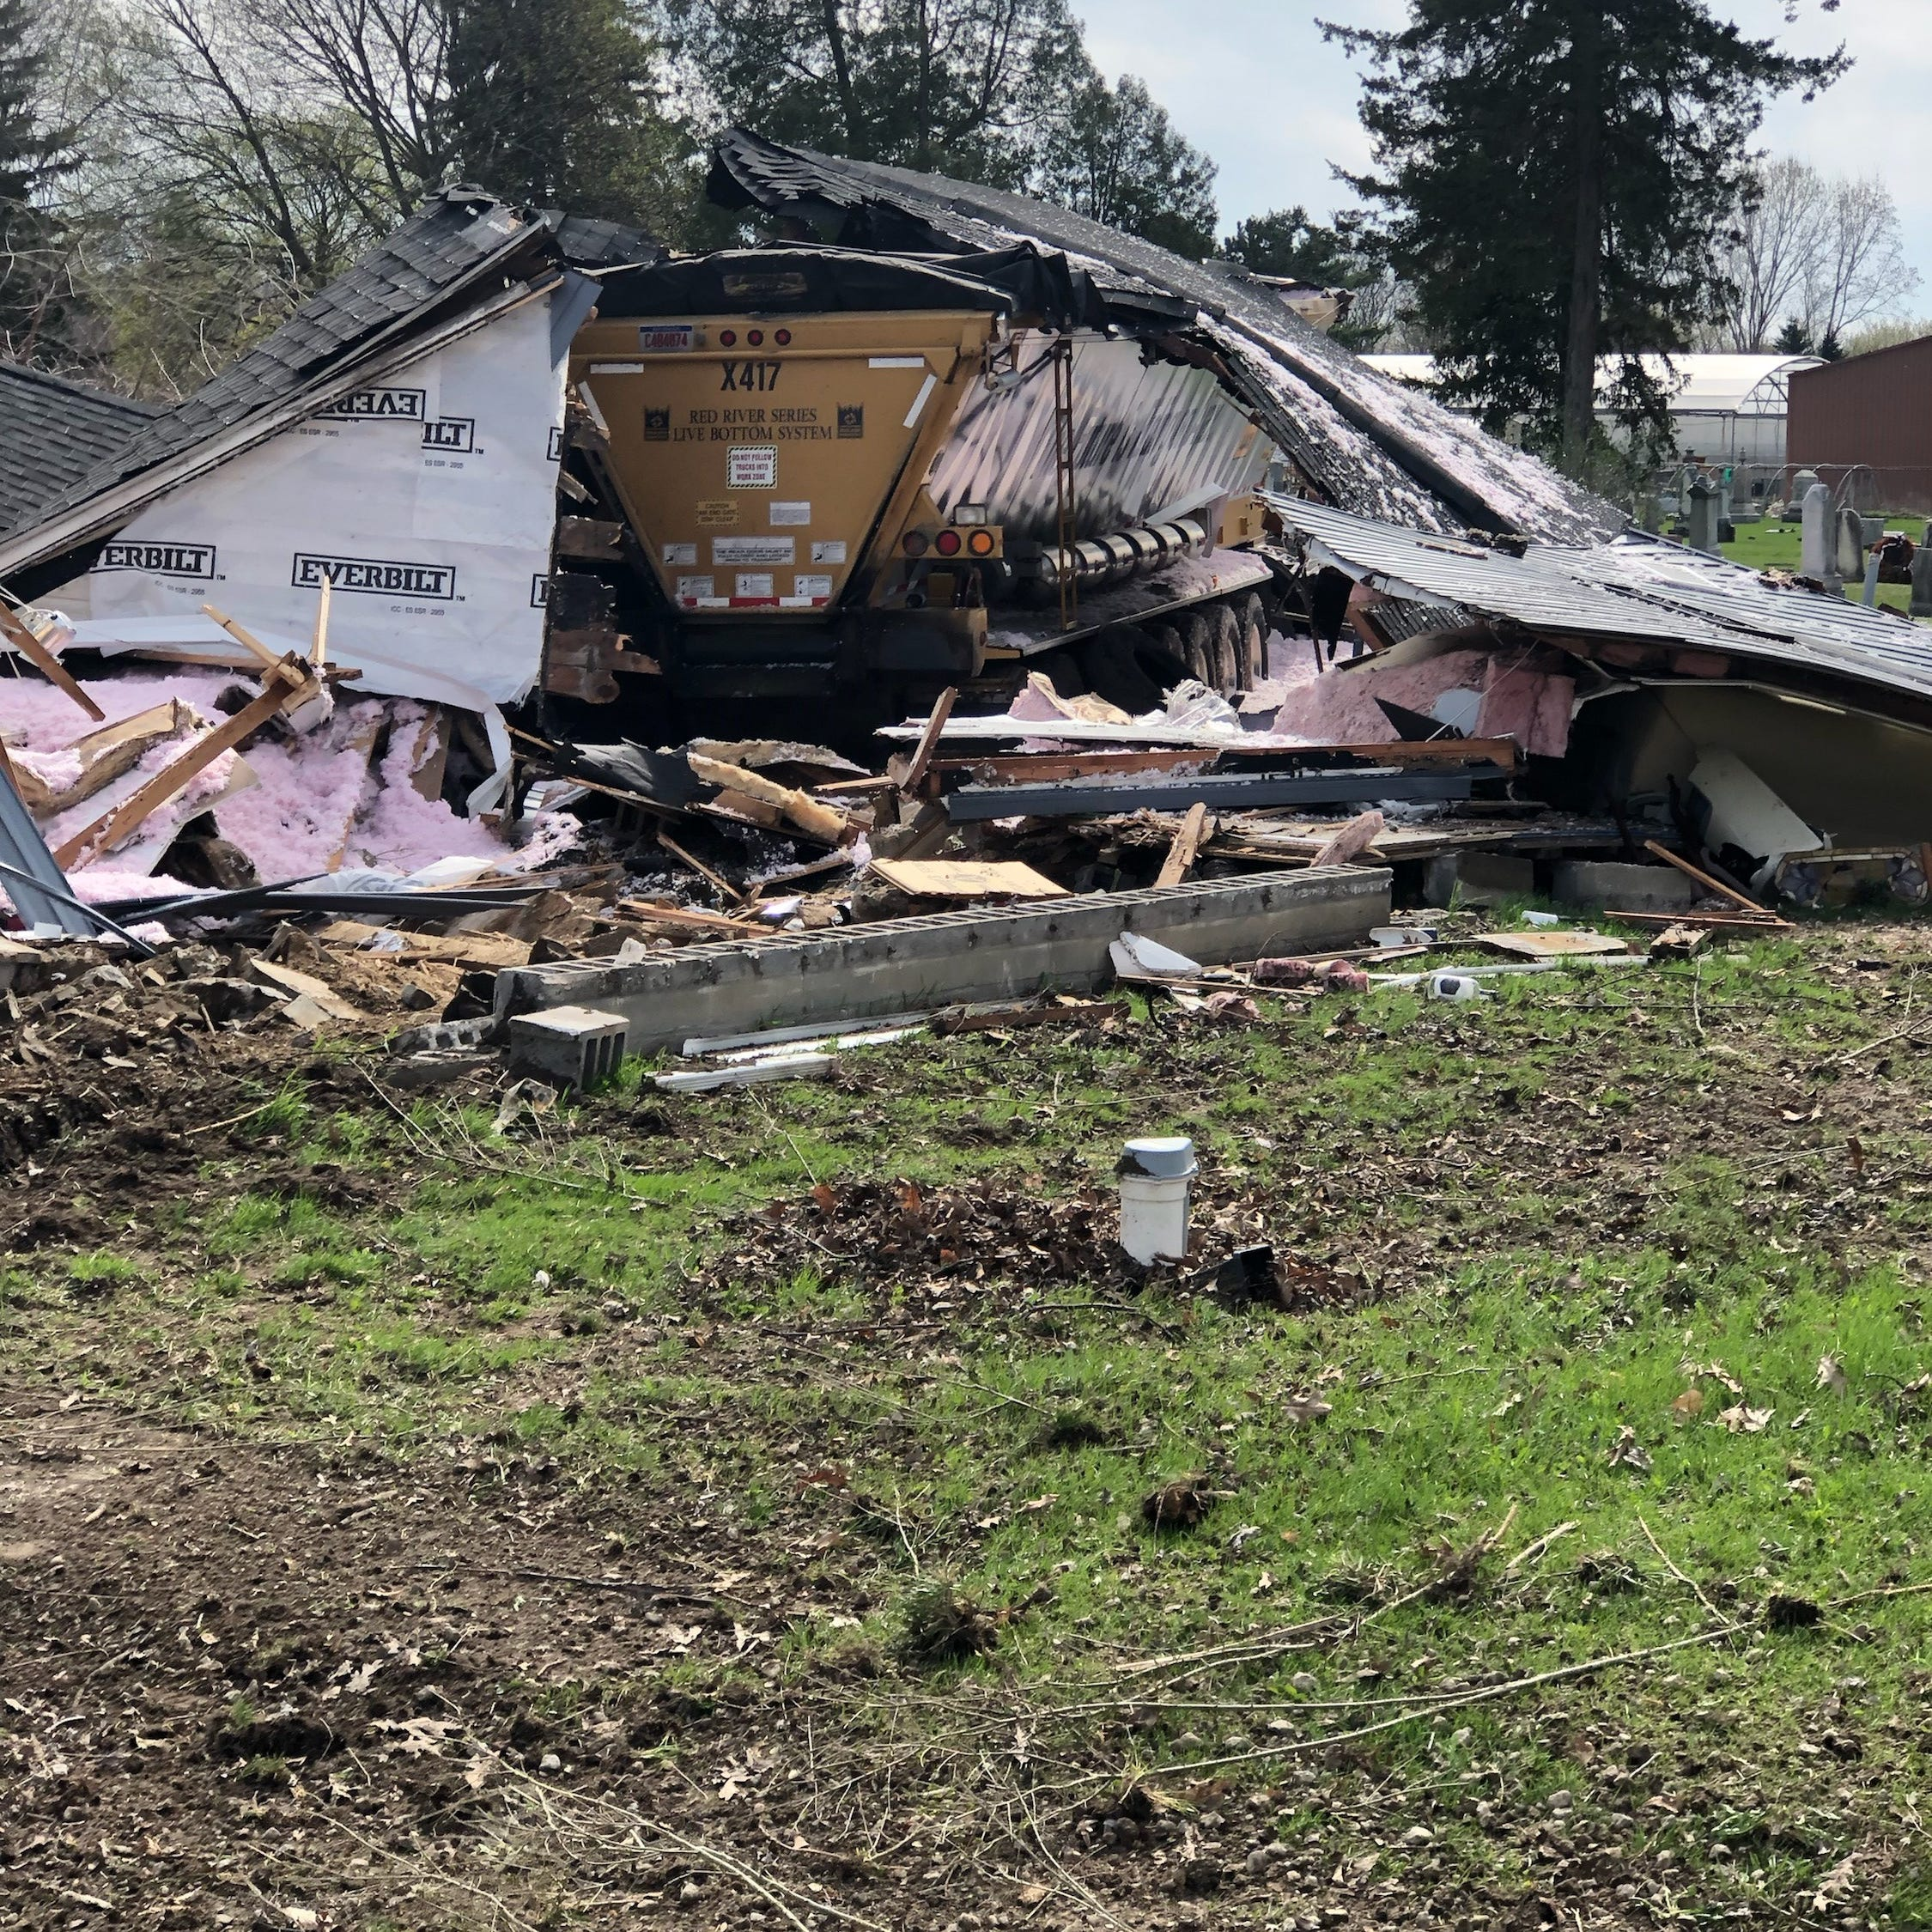 Runaway truck destroys Macomb County house, cemetery headstones